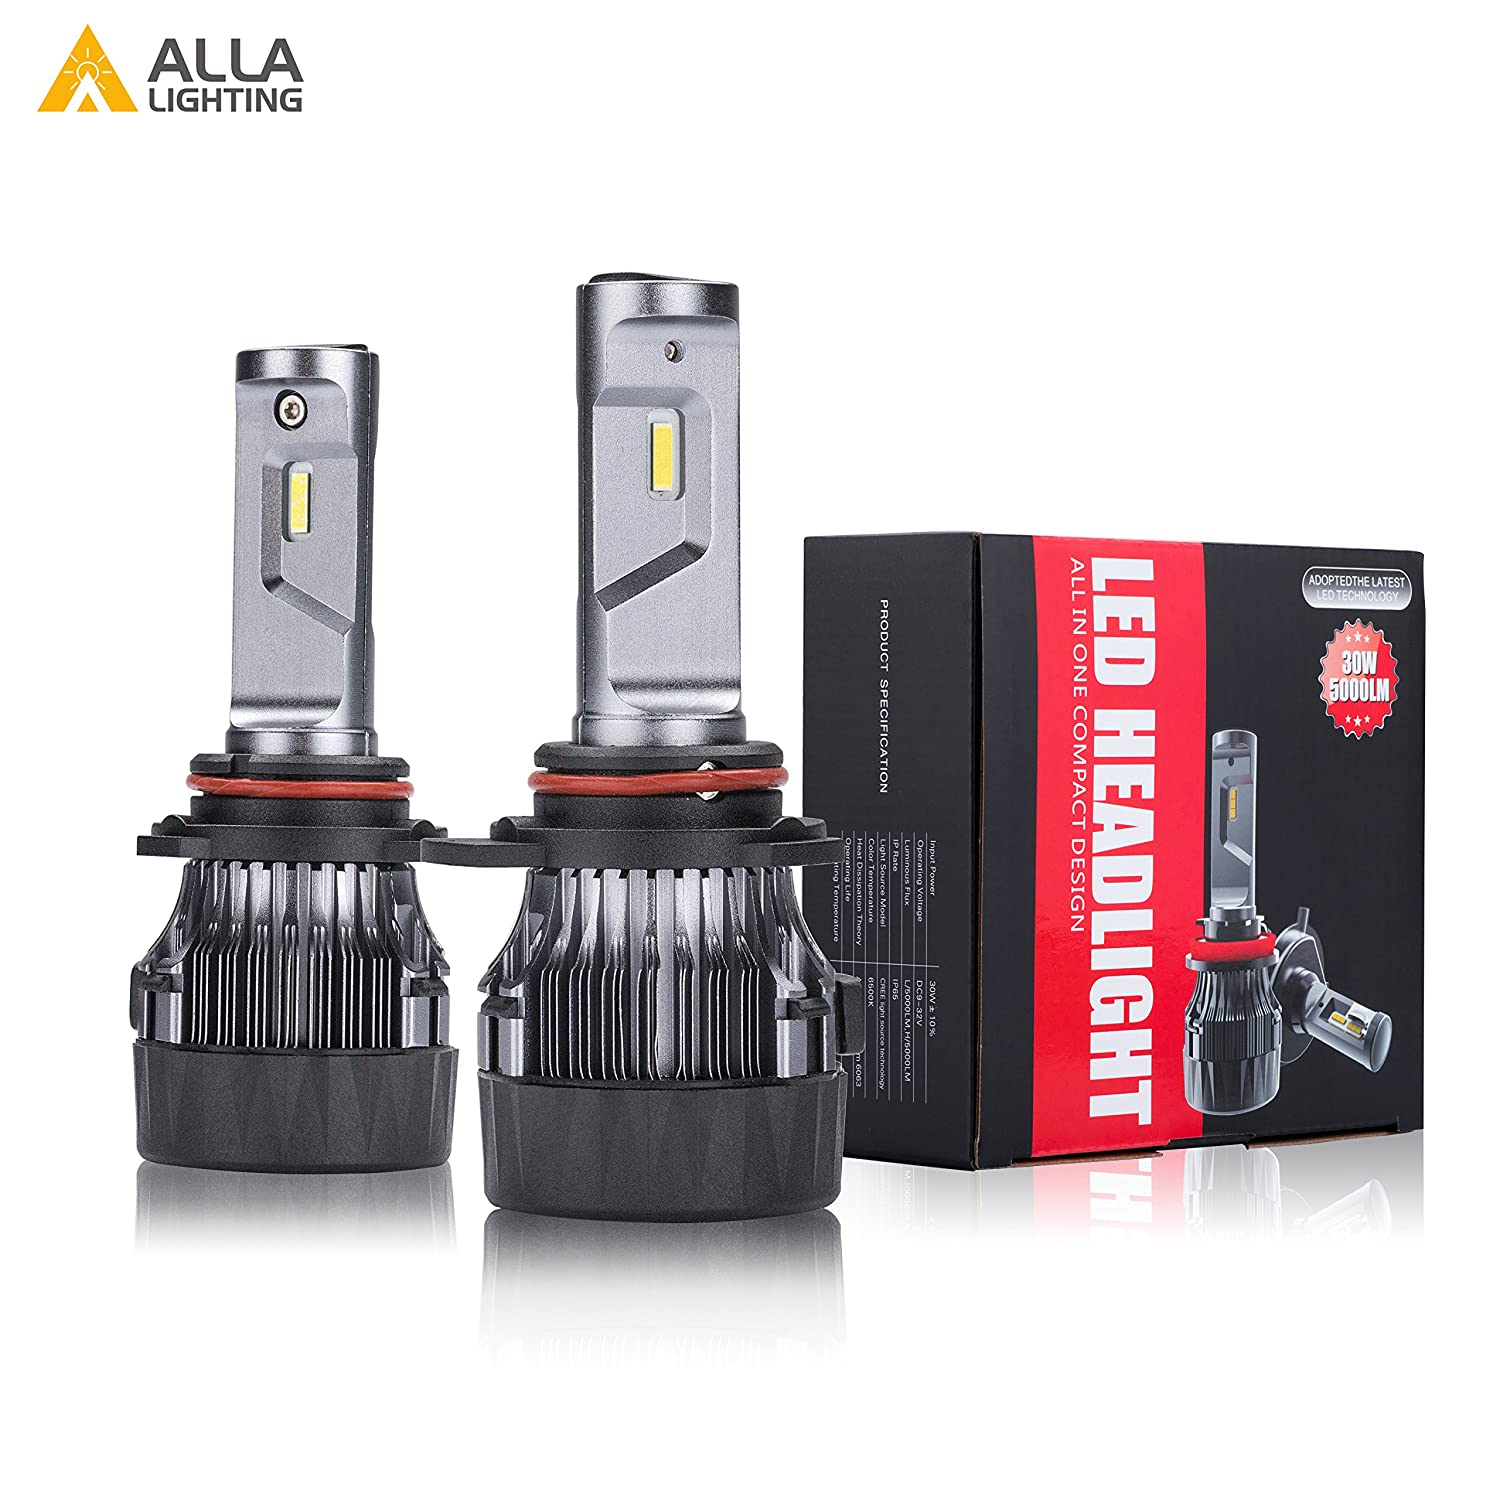 Alla Lighting S-HCR 2018 Newest Version 10000 Lumens Extremely Super Bright Cool White High Power SUPER Mini LED Headlight Bulb All-in-One Conversion Kits Headlamps Bulbs Lamps H8, H9 H11